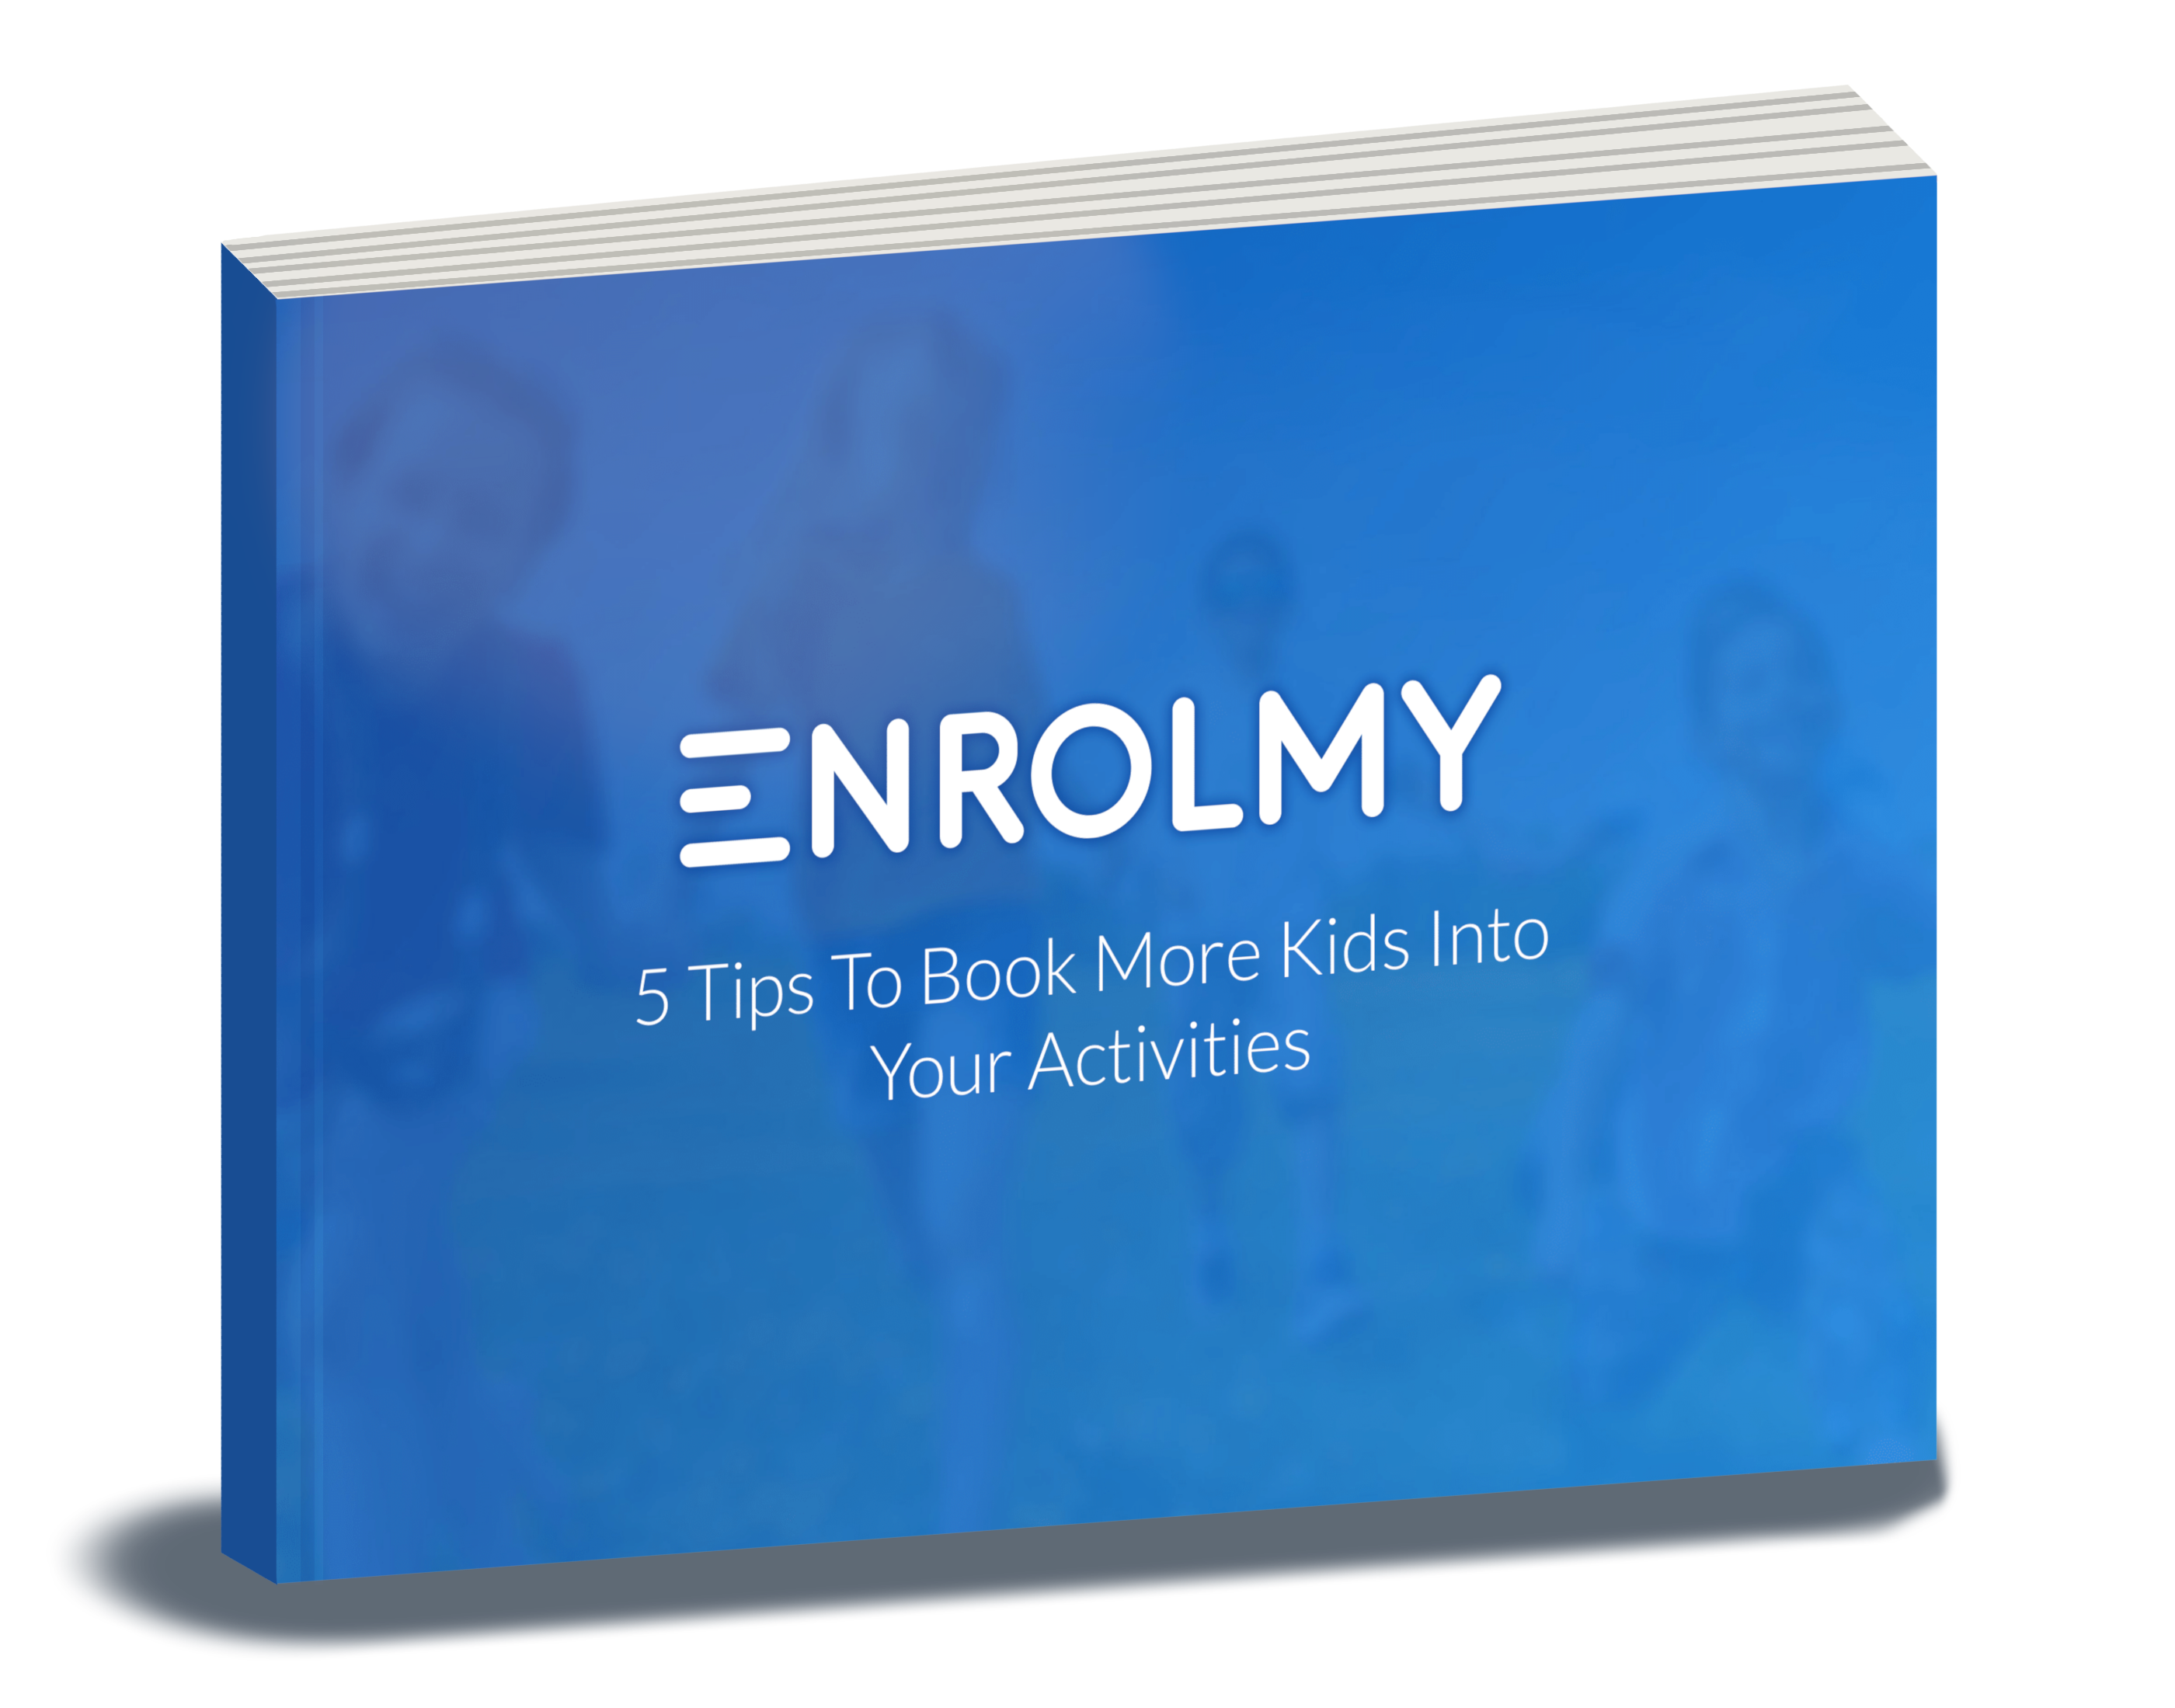 Enrolmy ebook- 5 tips for activity providers to increase bookings